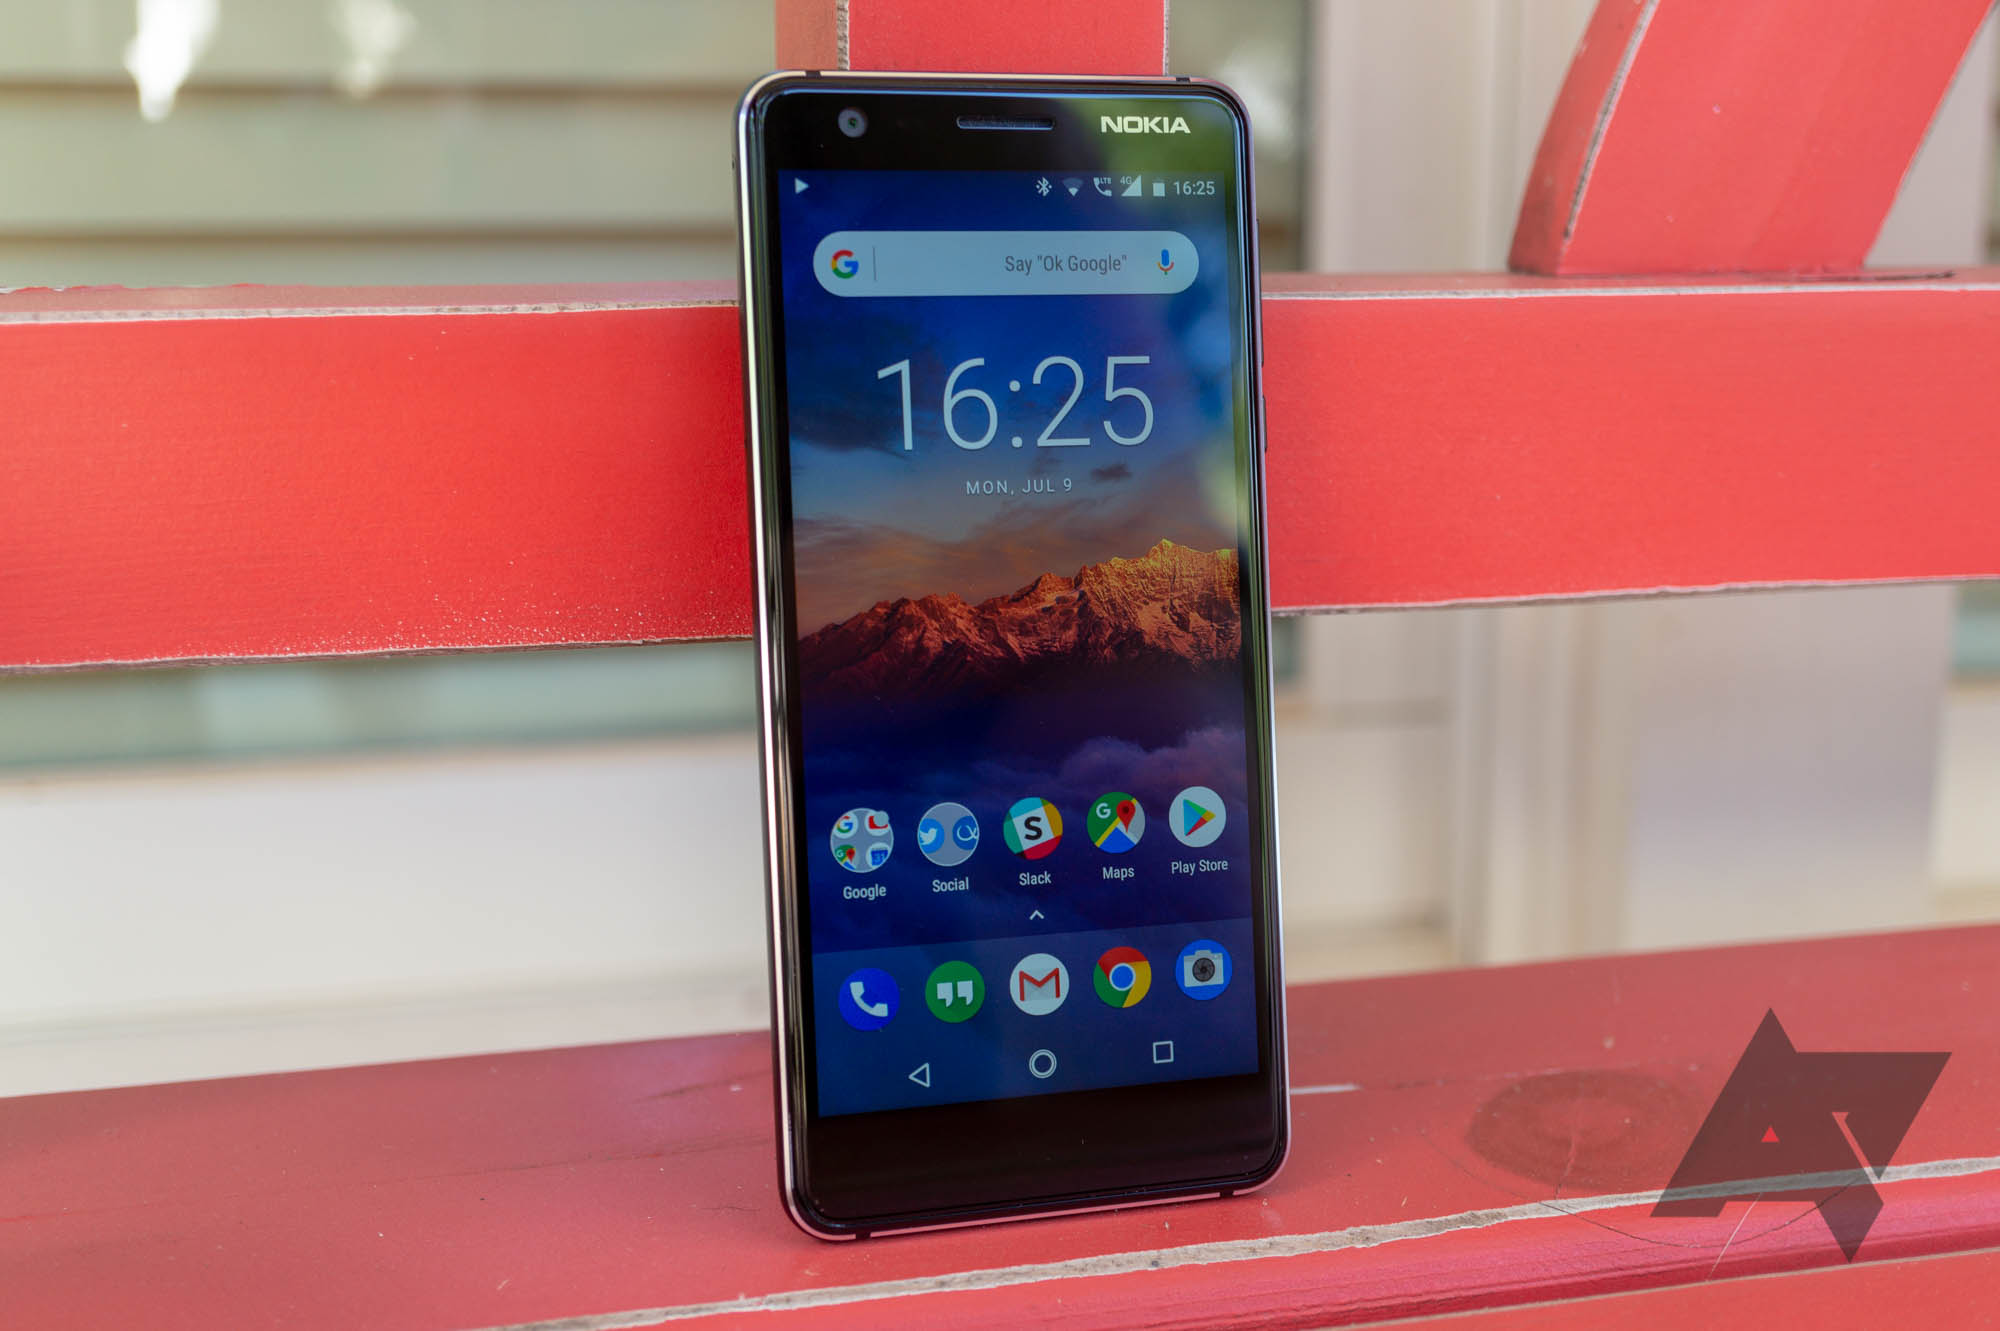 cab498c46ef The Nokia 3.1 is one of HMD Global s newest budget phones